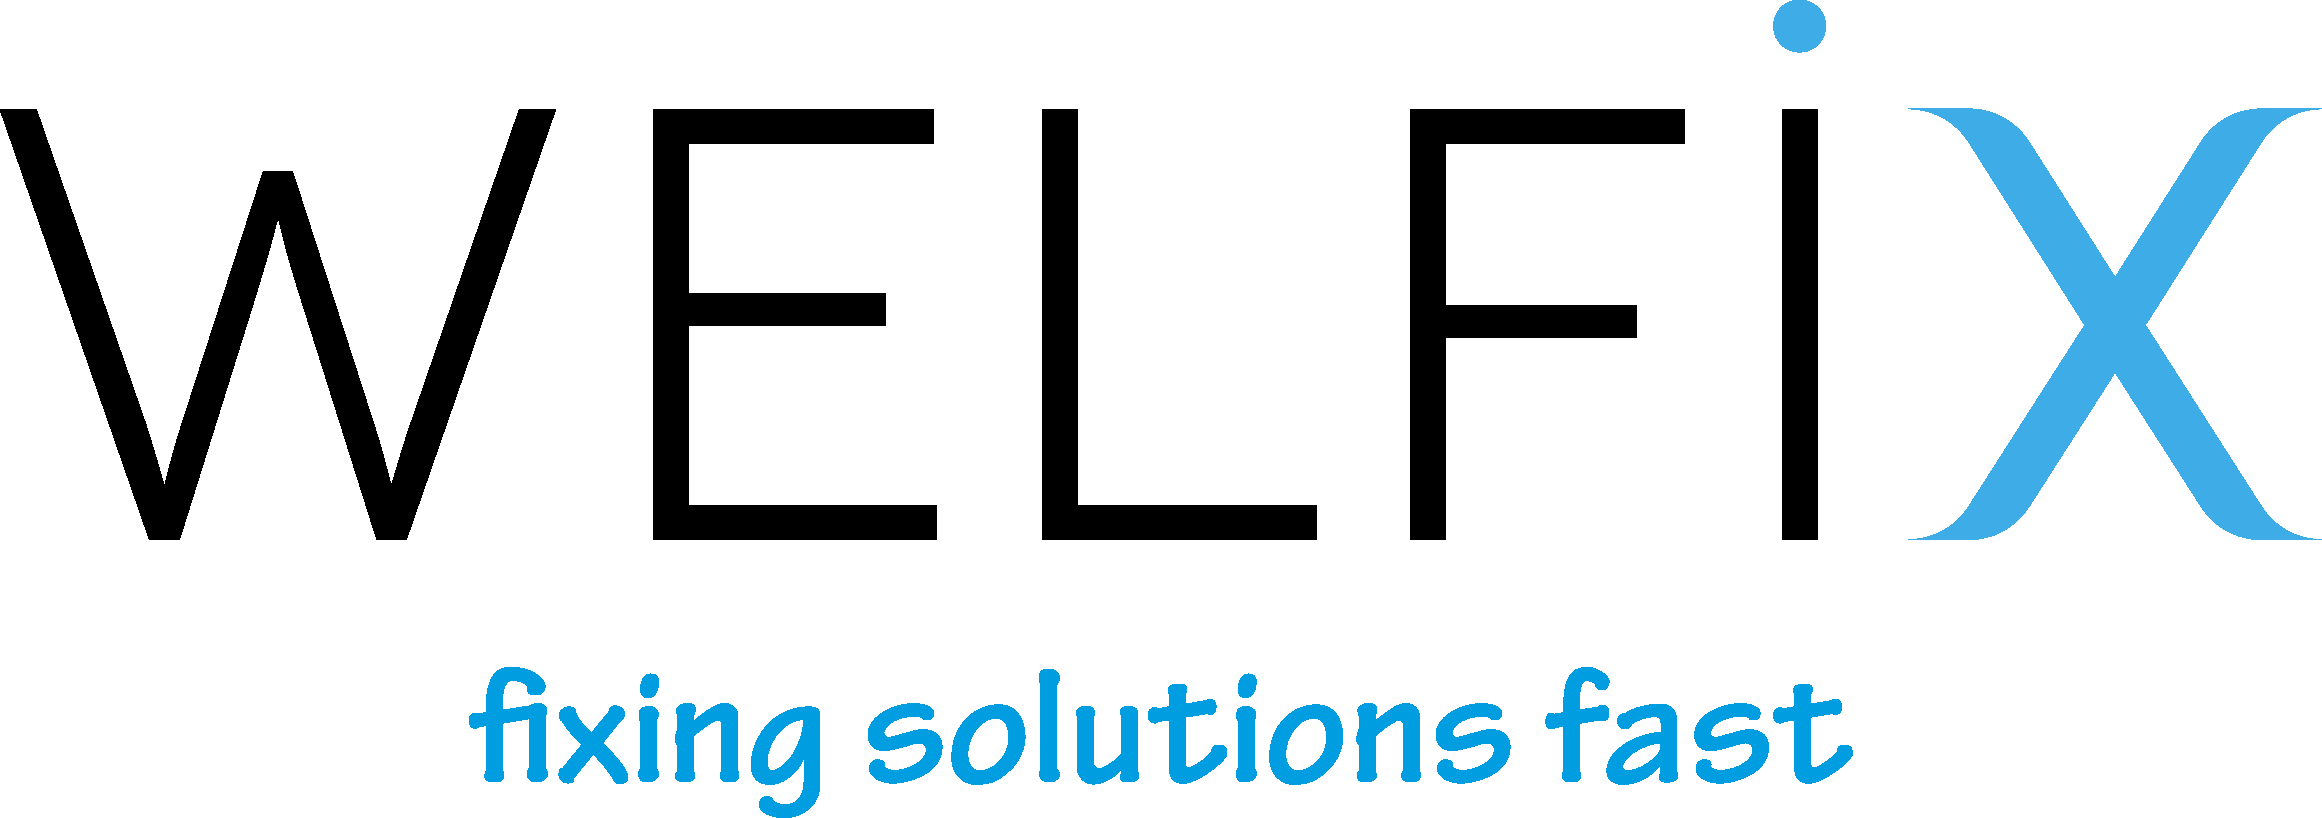 Fixing Solutions Fast